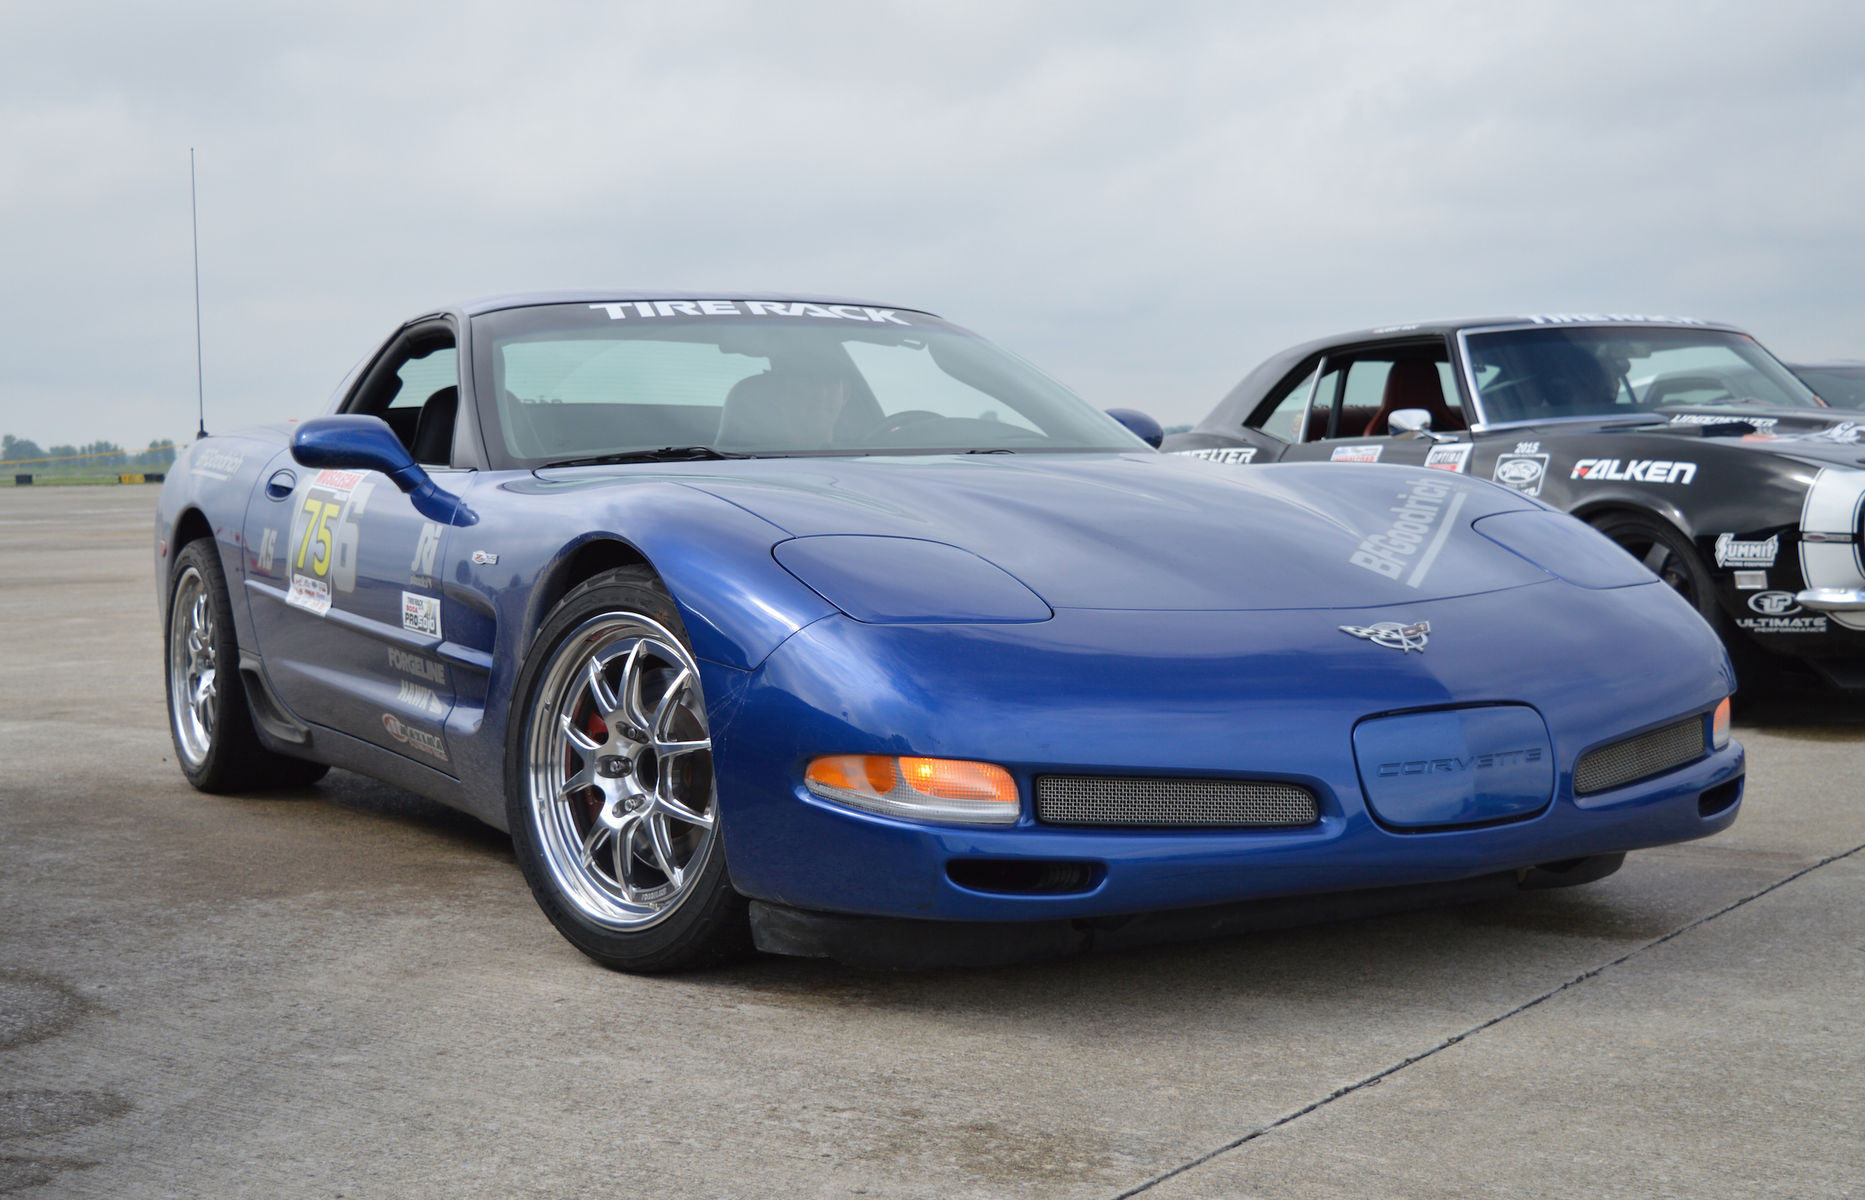 2003 Chevrolet Corvette Z06 | Nathan Popp's C5 Corvette Z06 on Forgeline GA3R Wheels